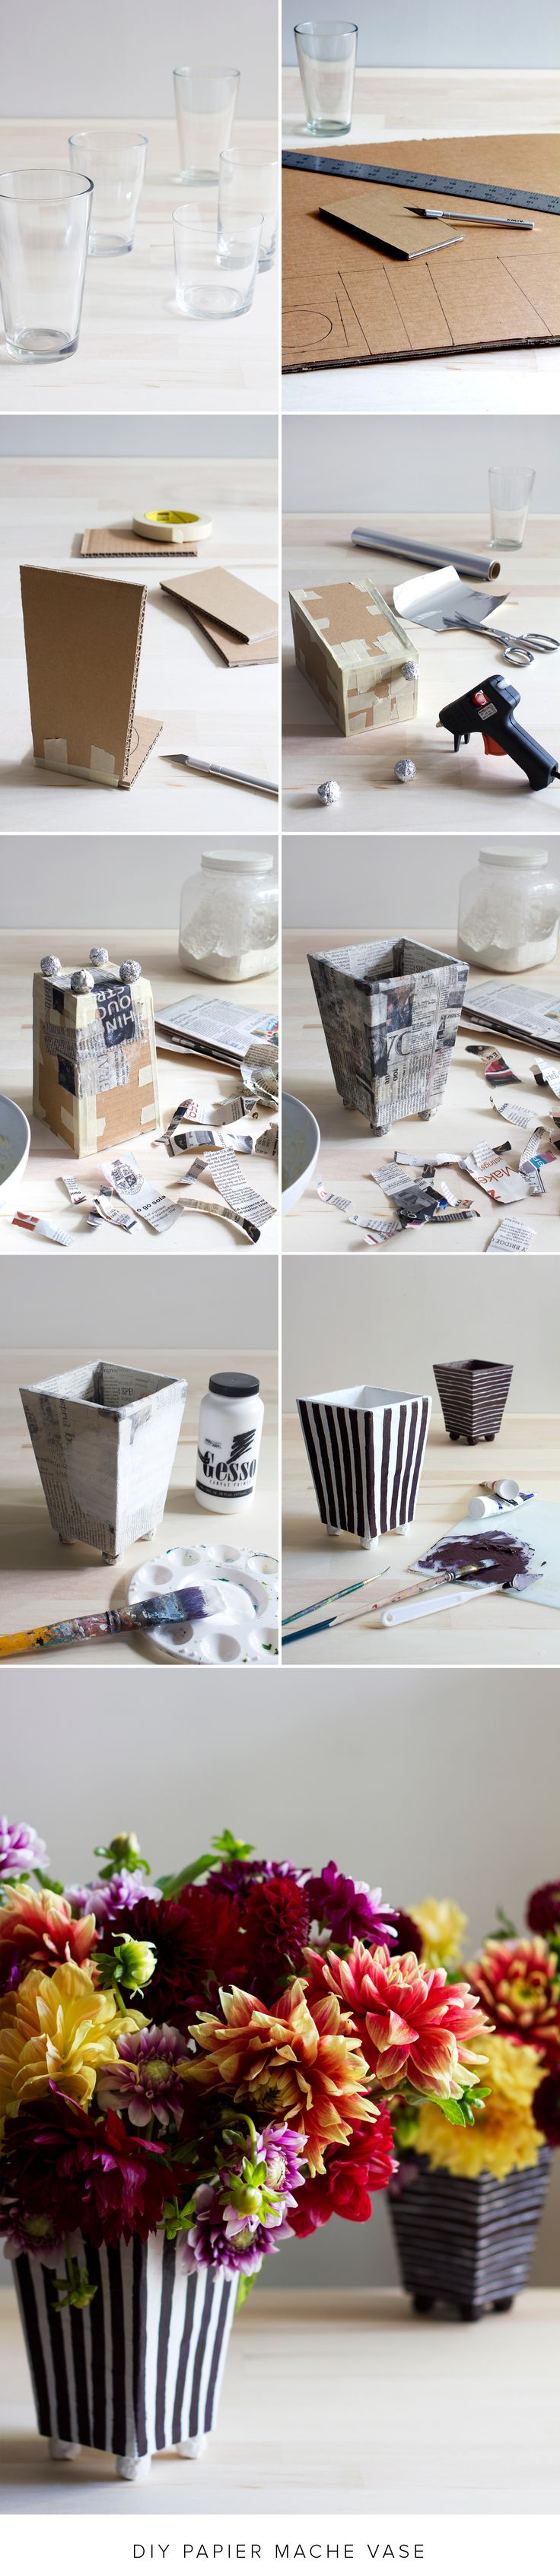 DIY paper mache vase.                               Gloucestershire Resource Centre http://www.grcltd.org/scrapstore/